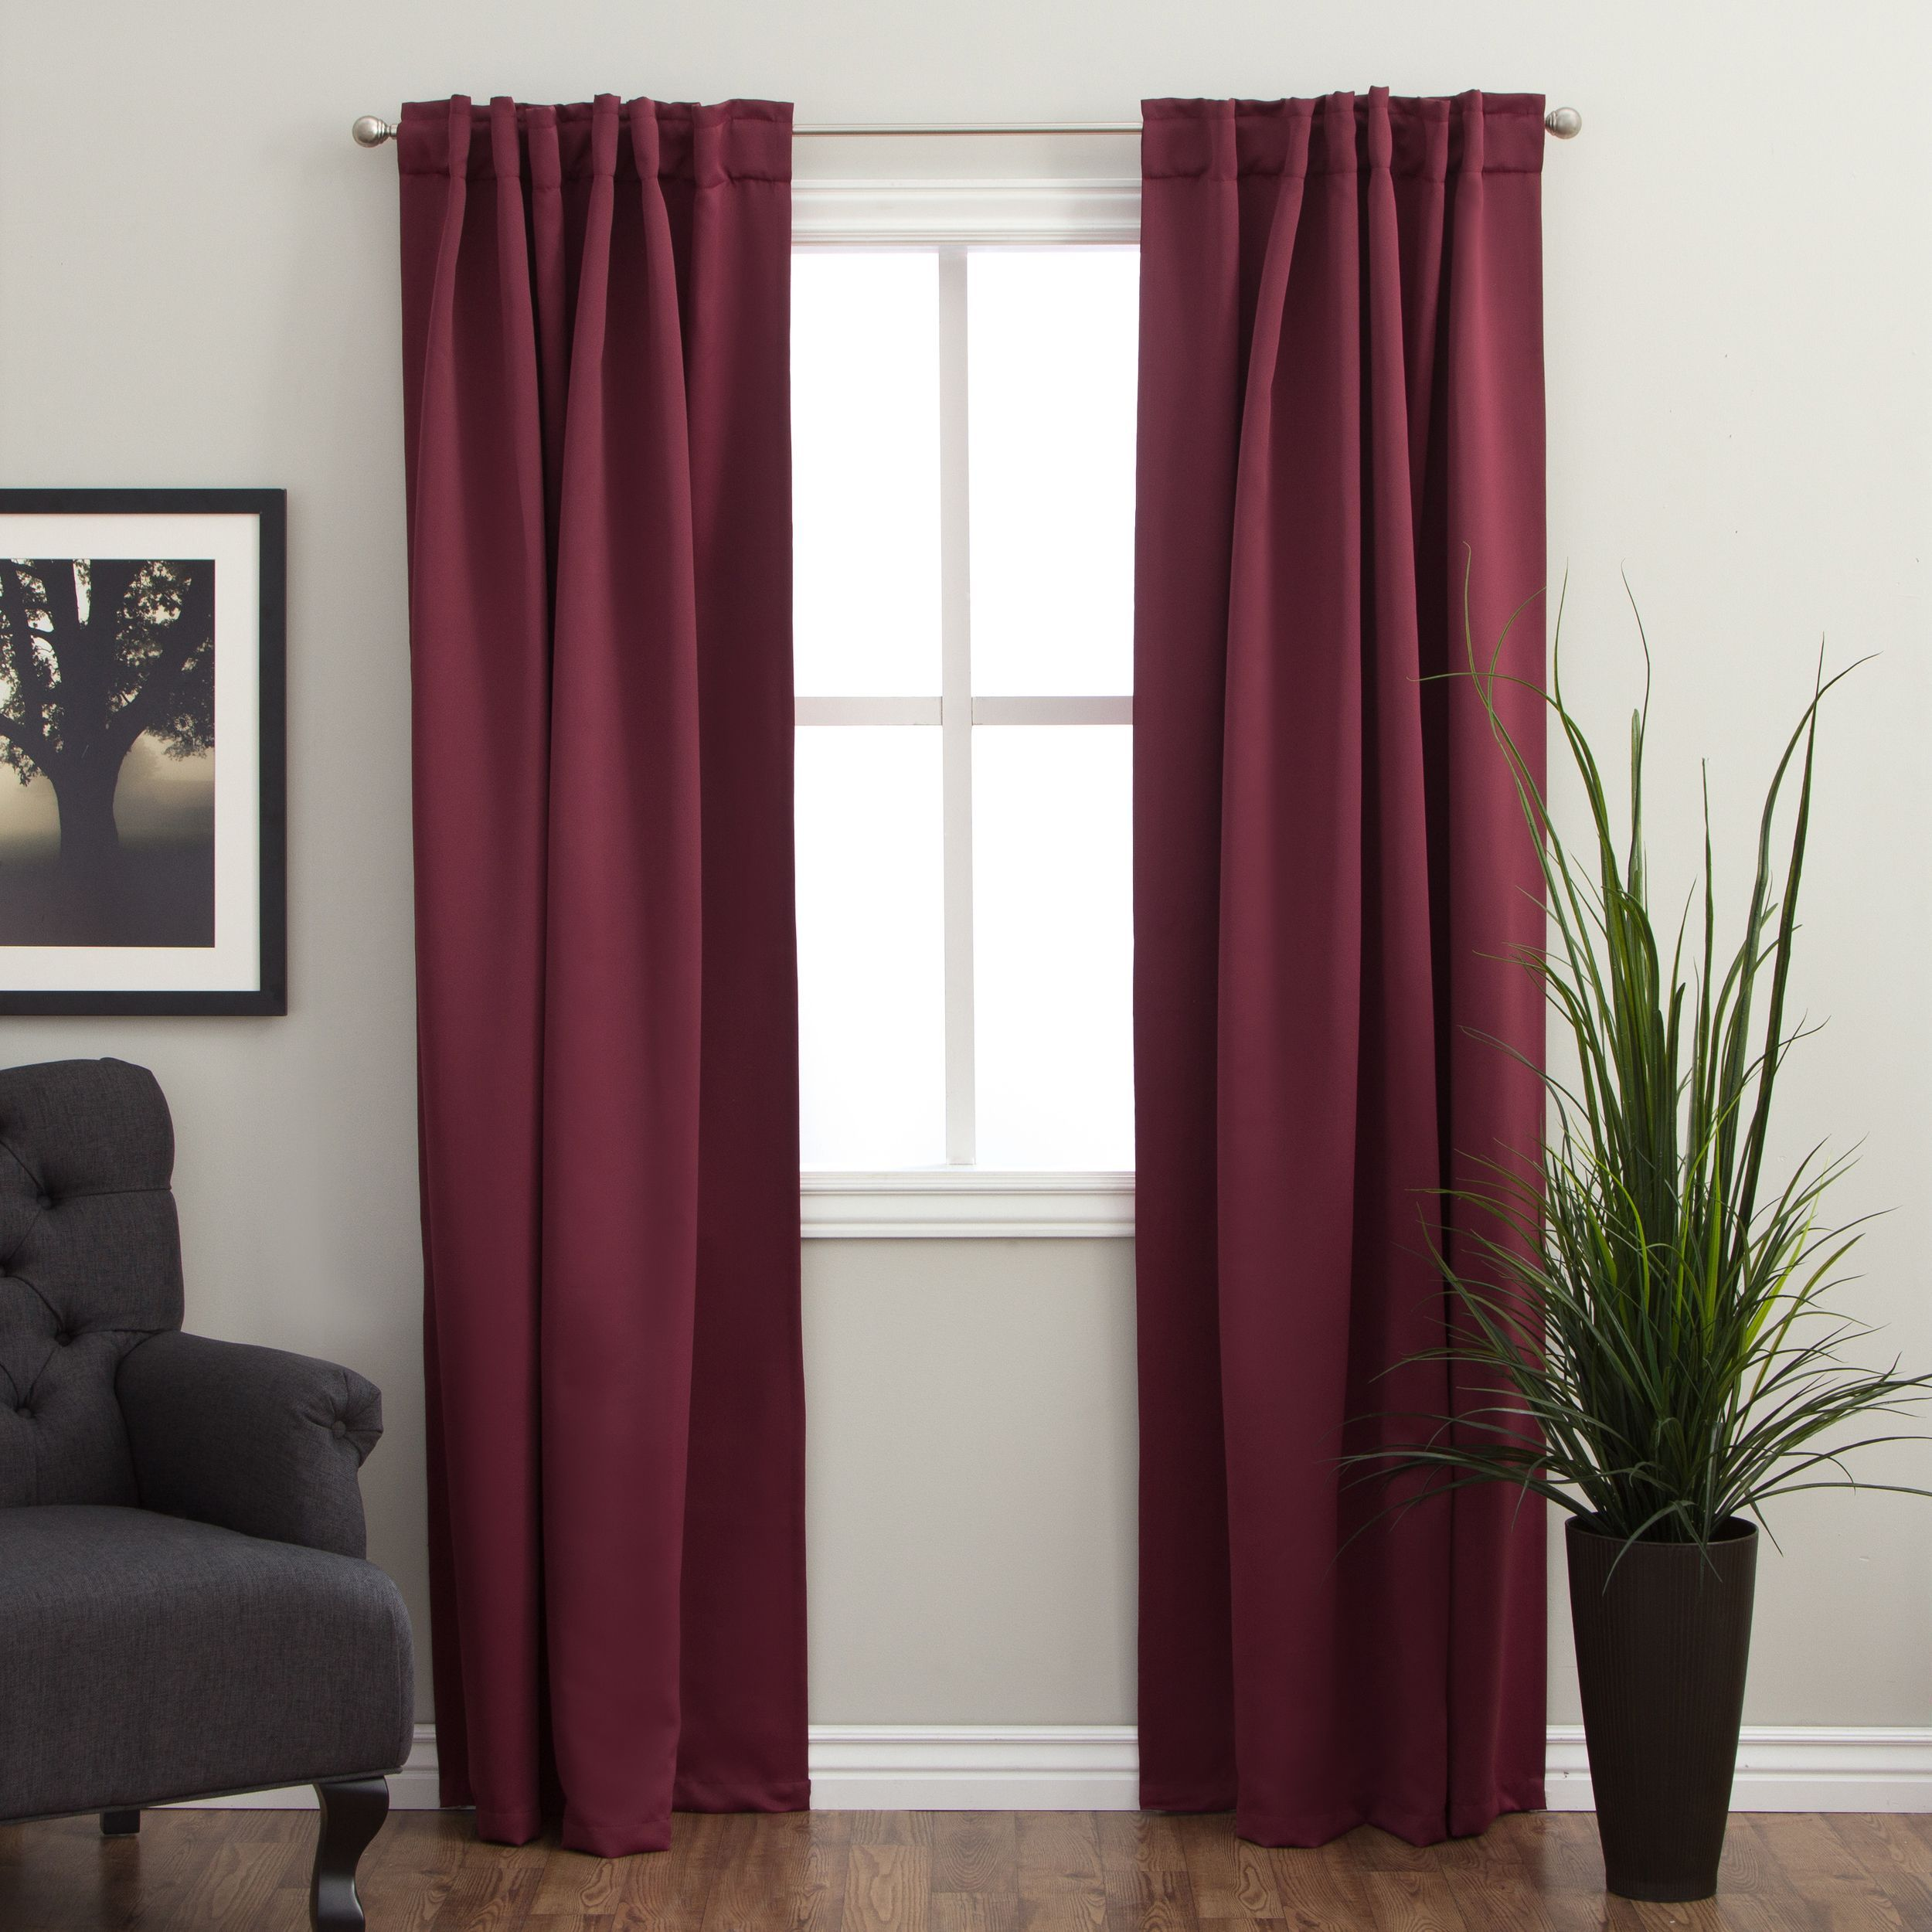 Arlo Blinds Back Tab Blackout Curtains